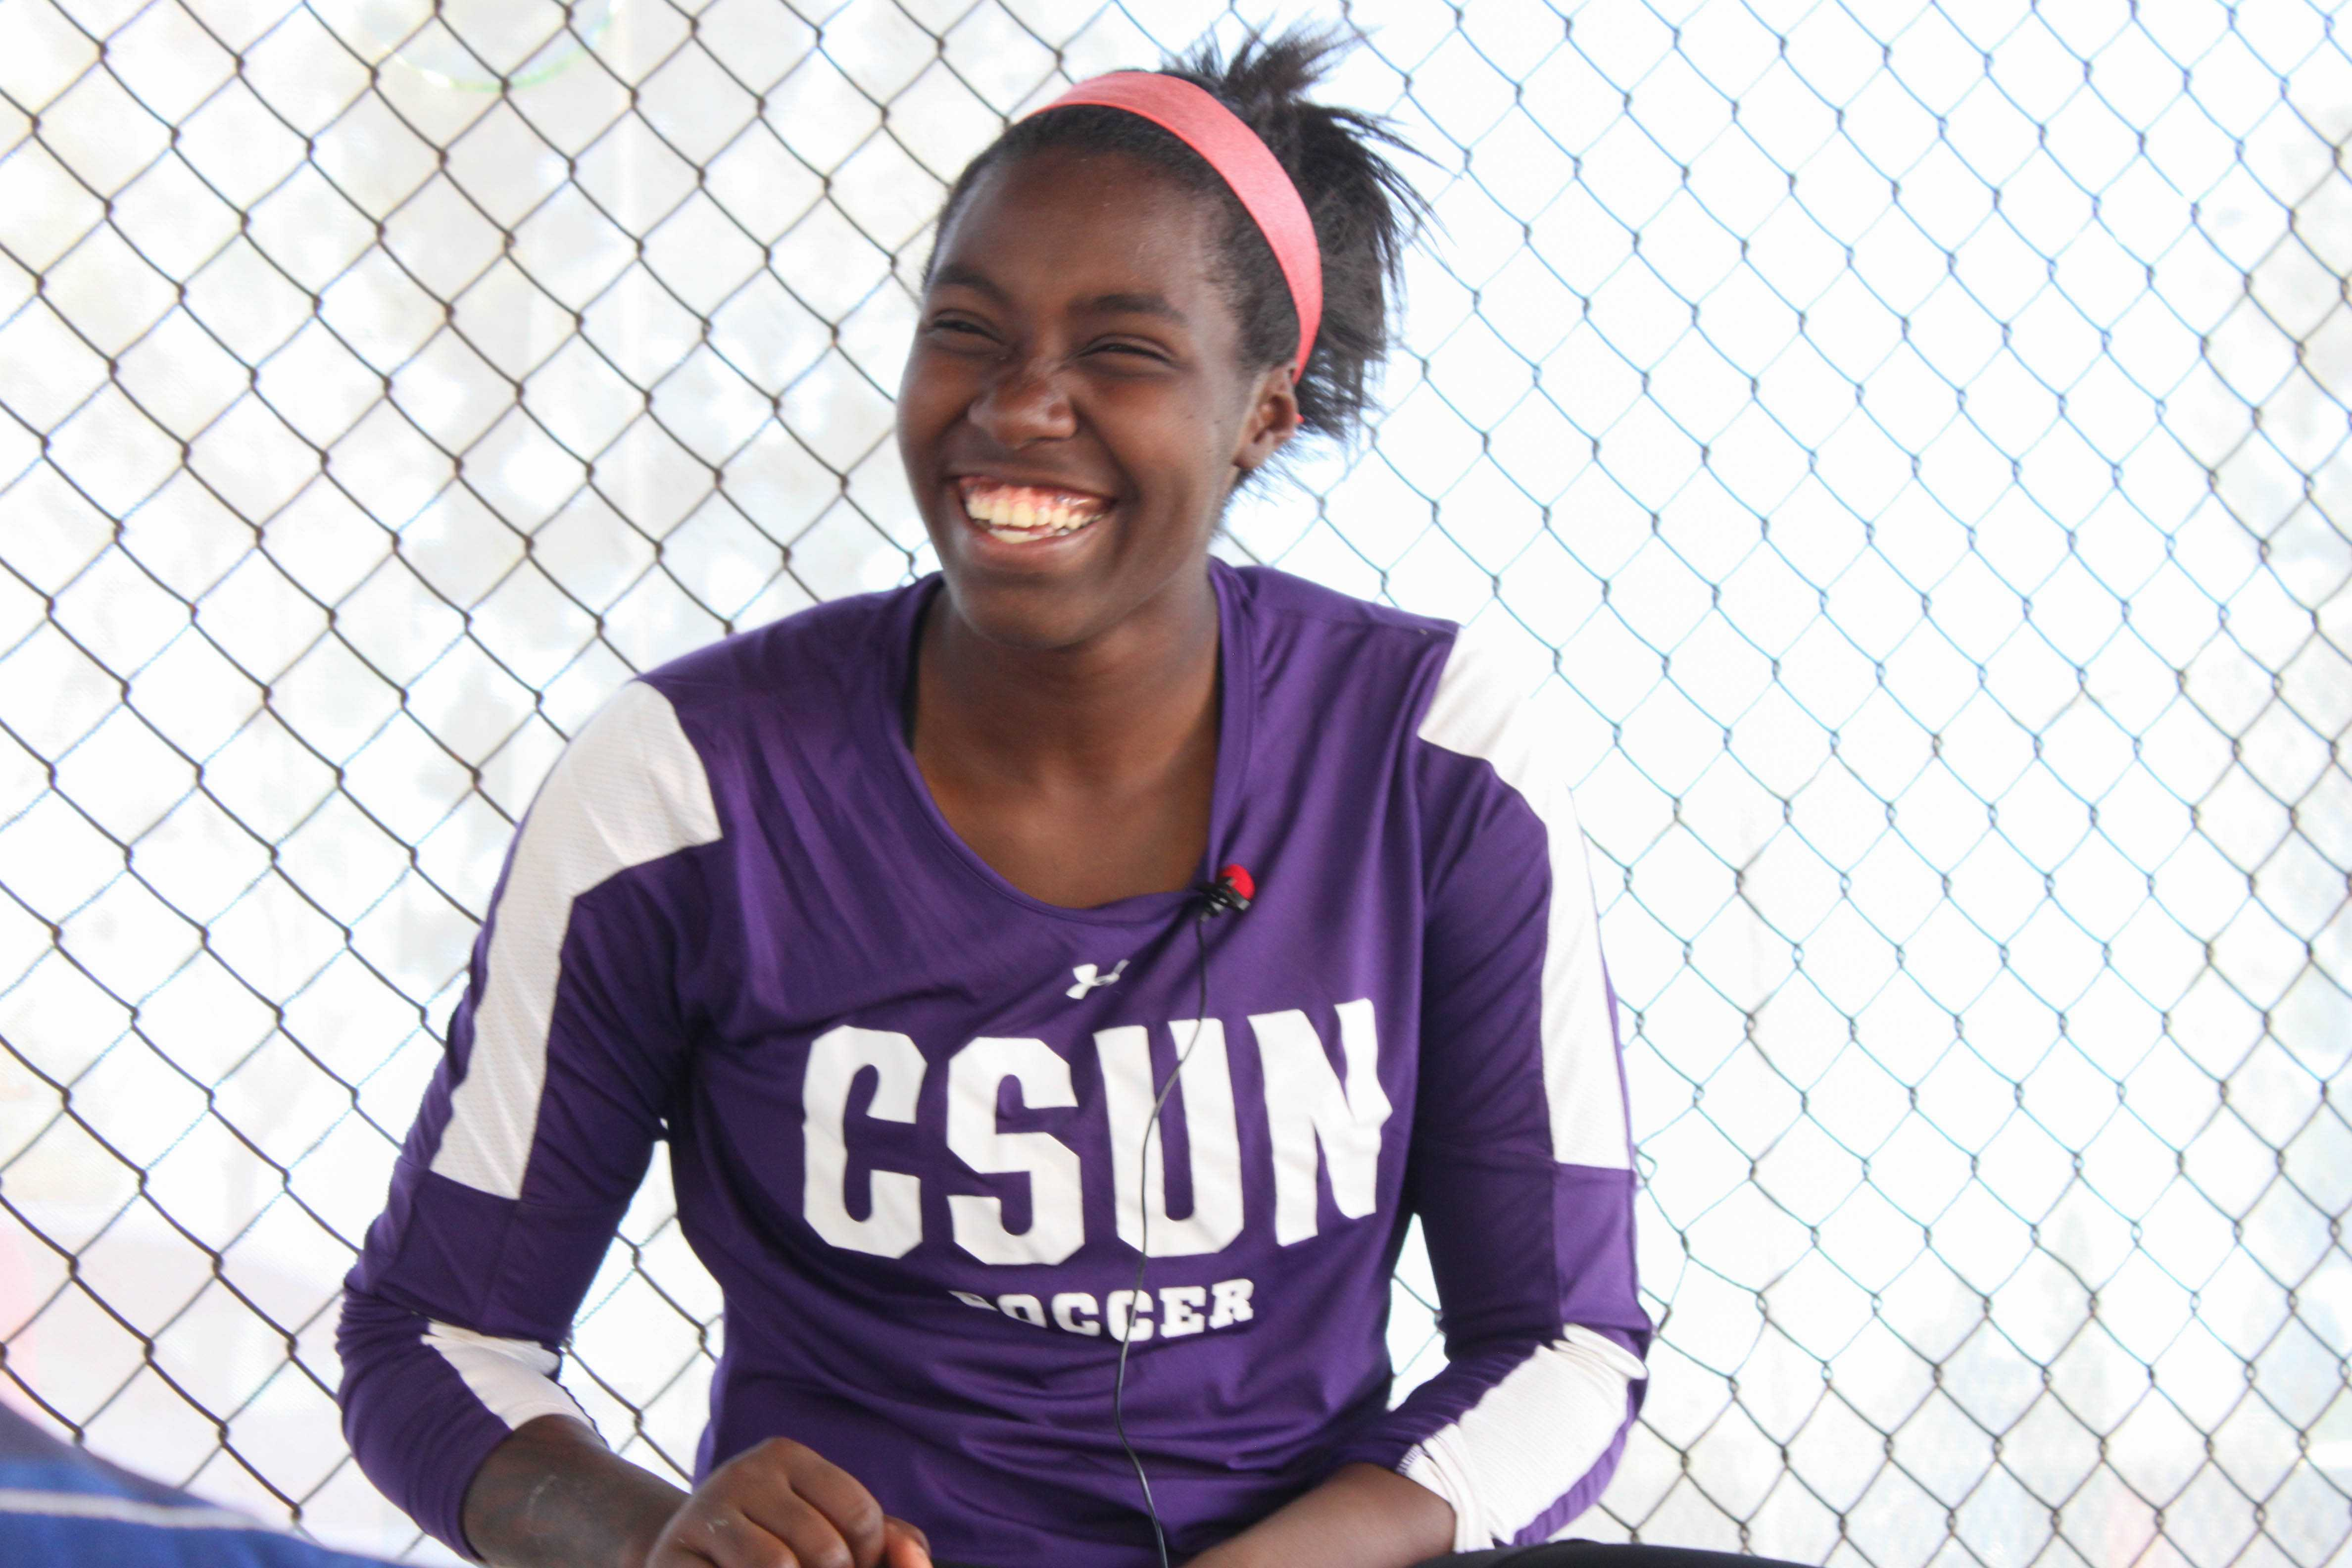 Goalkeeper for CSUN's women's soccer team and shutouts leader with 28 shutouts Jovani McCaskill being interviewed for The Sundial after a practice game at CSUN's practice soccer field, Oct. 25, Northridge, CA. Photo credit: Daniela Barhanna